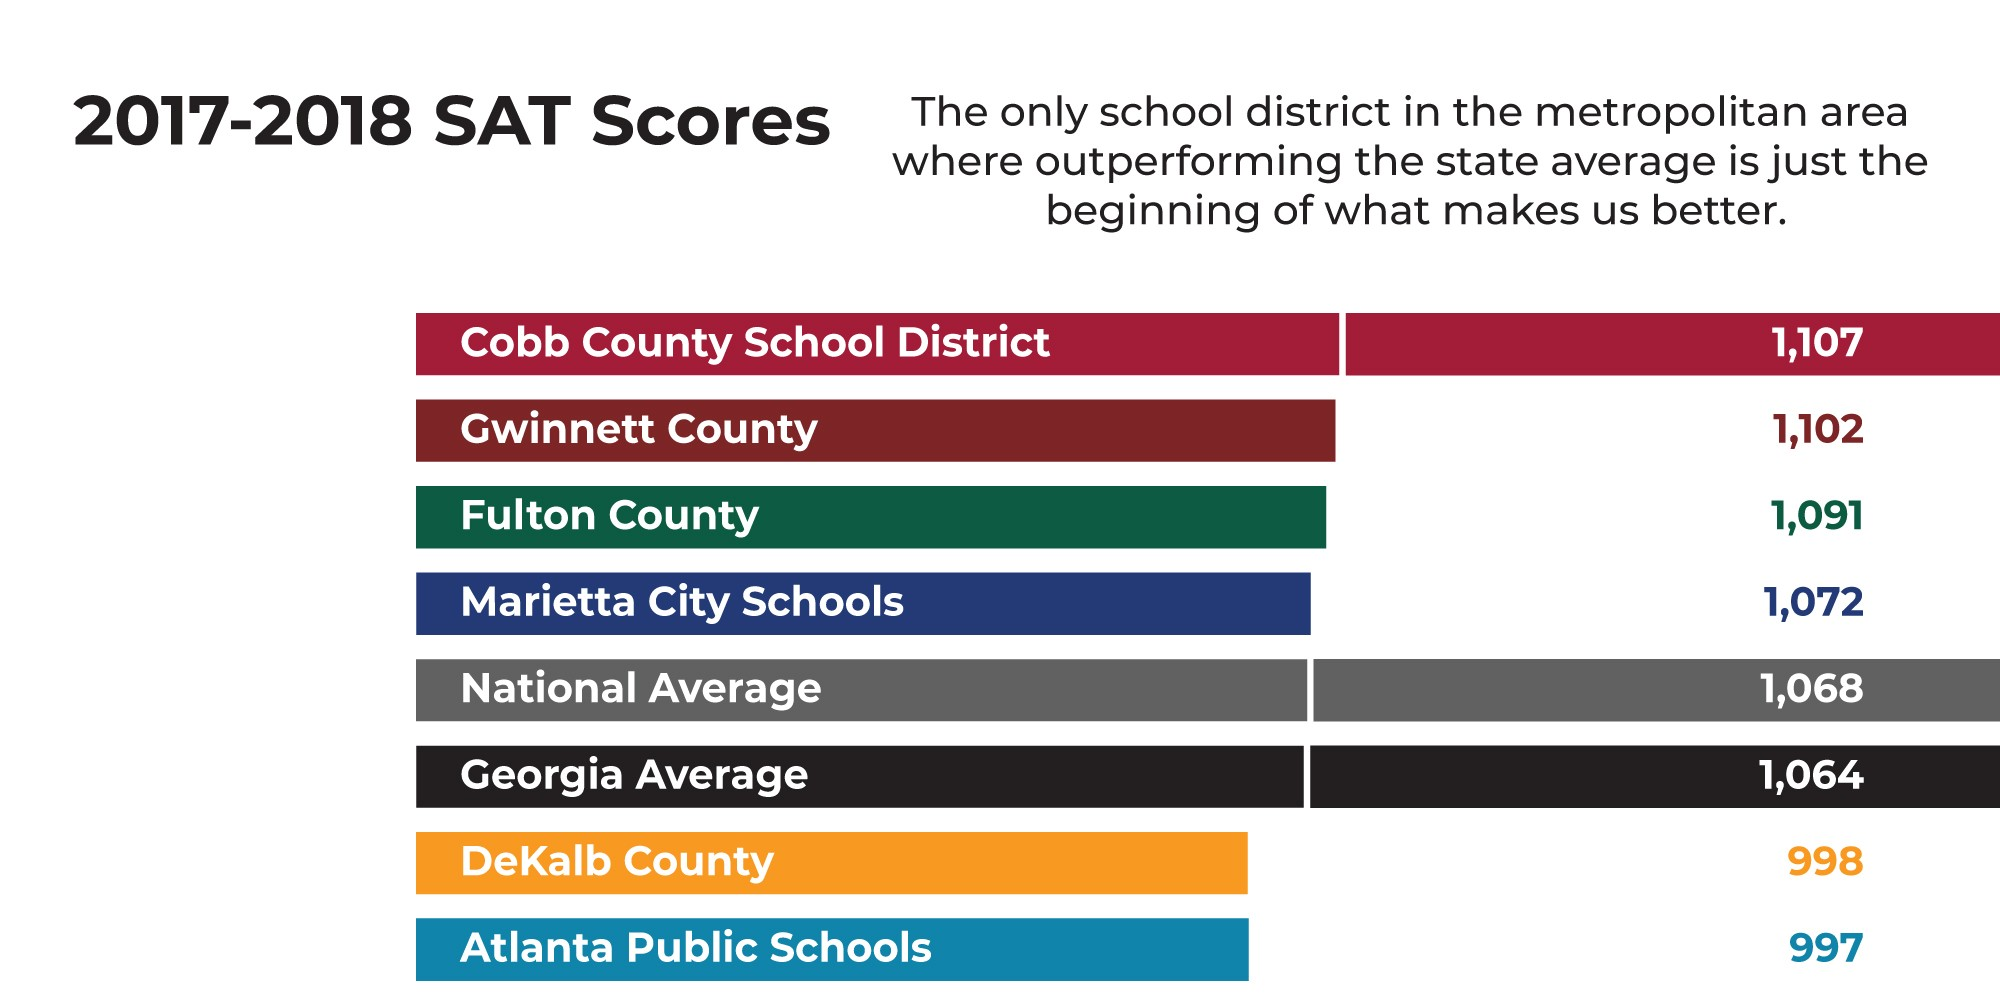 Cobb County Student SAT Scores Increase Again